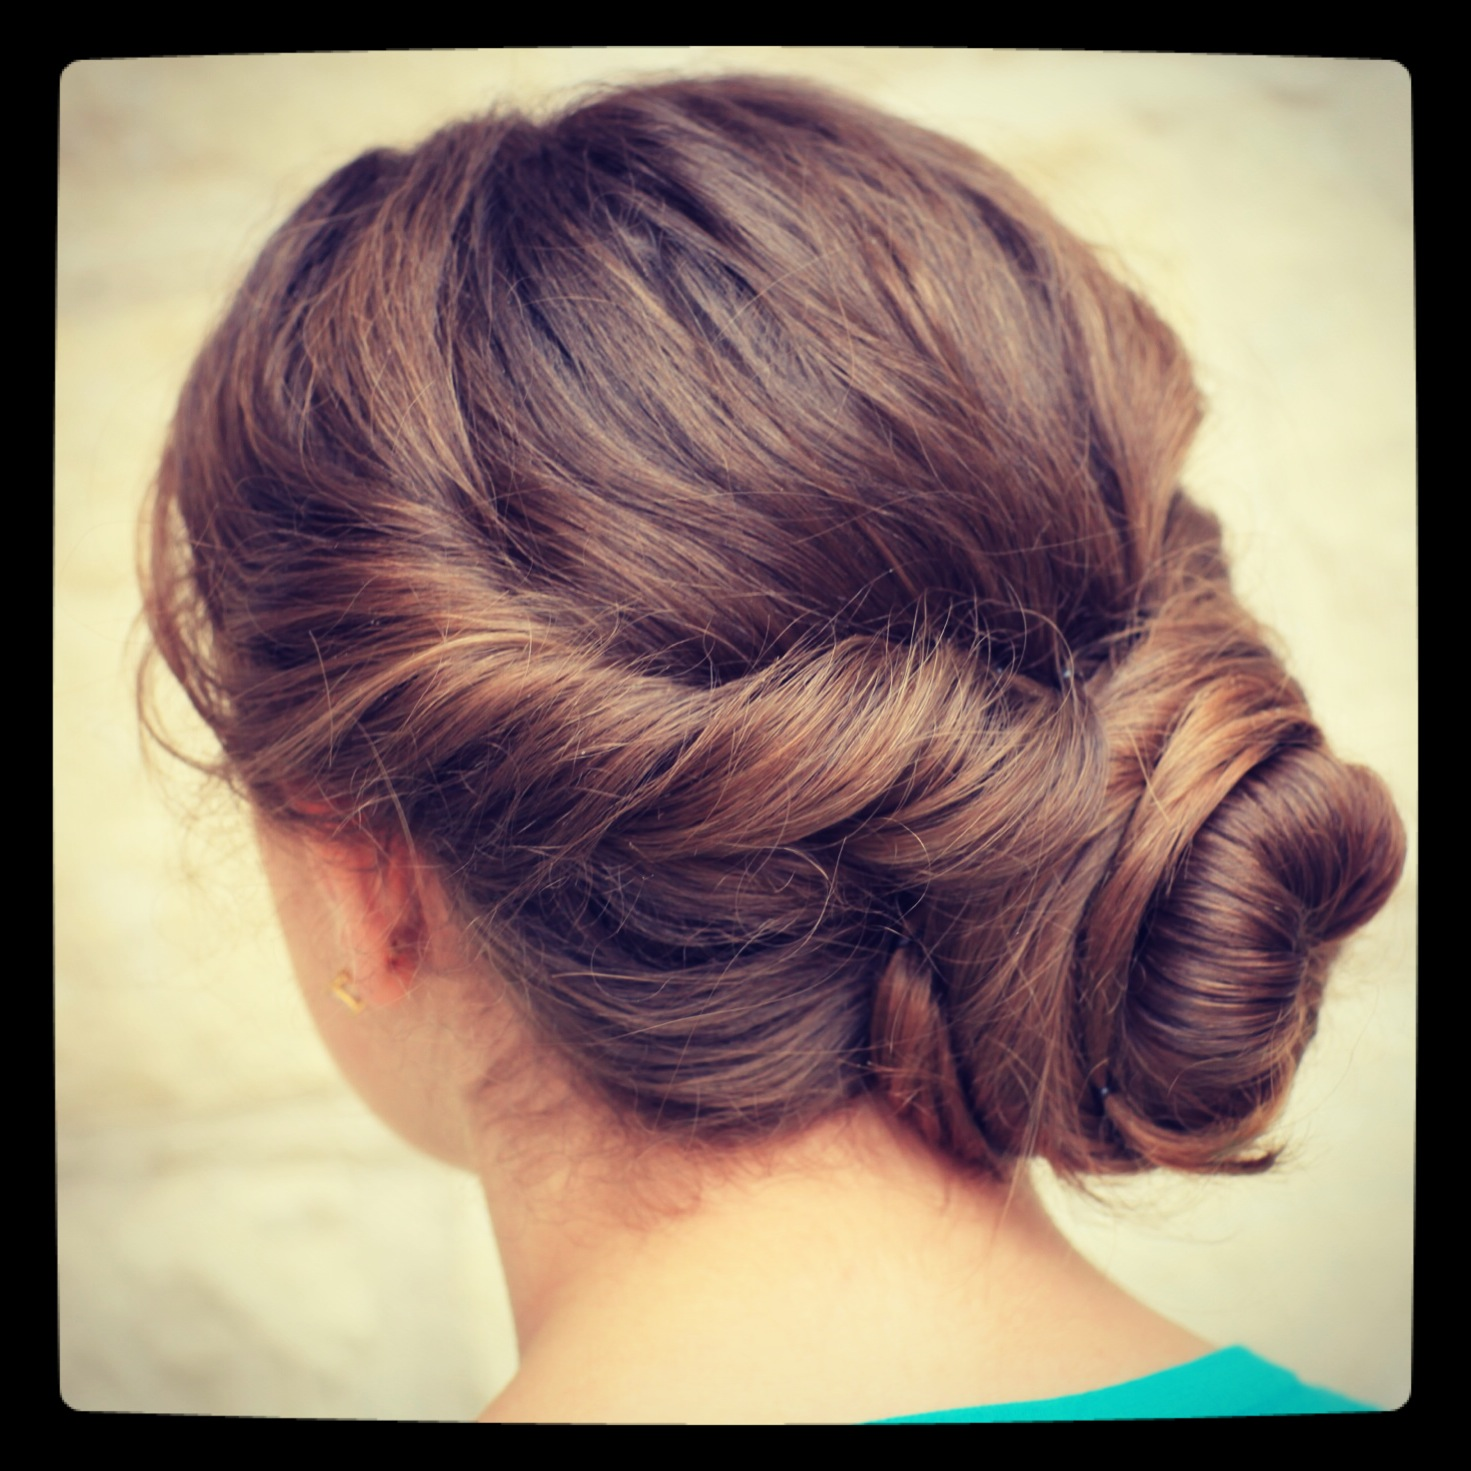 Prom Hairstyles - Cute Girls Hairstyles